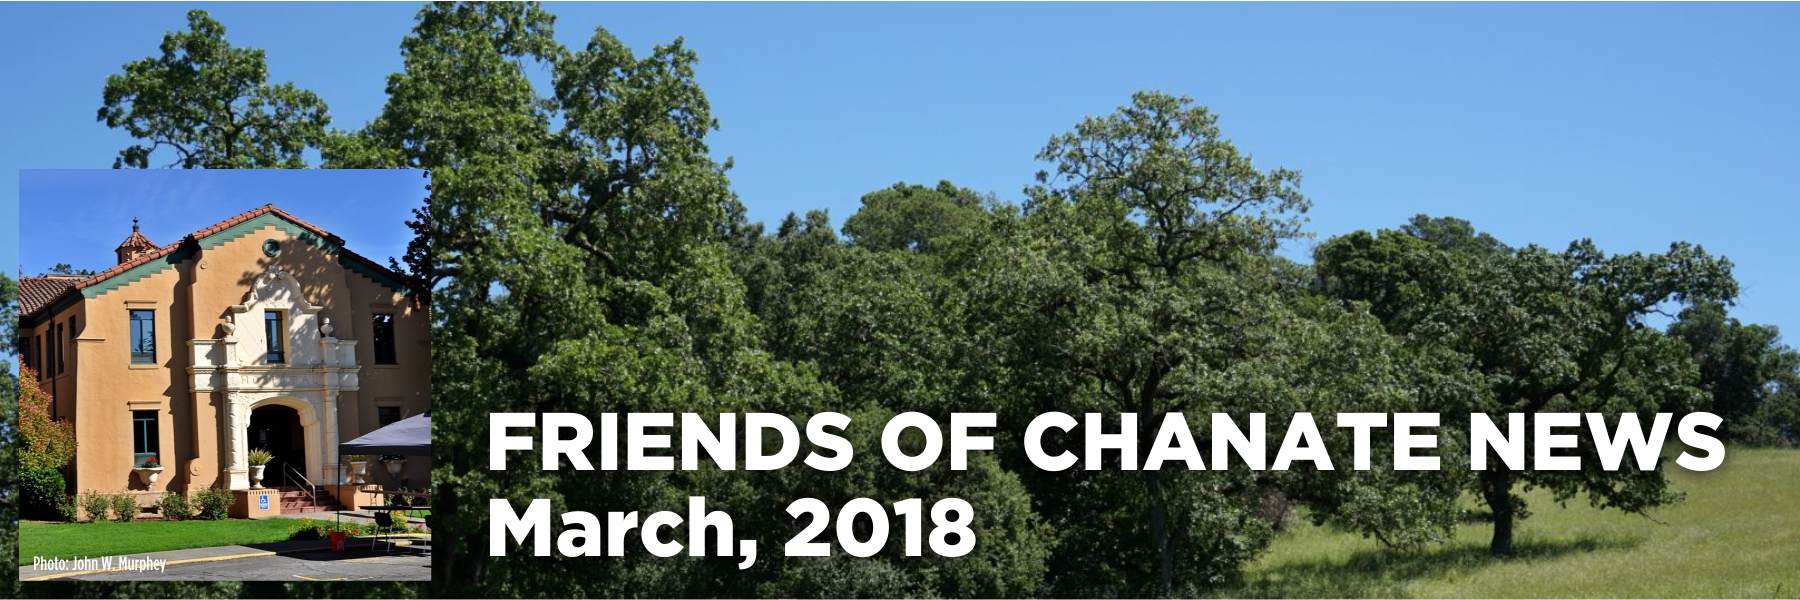 "Thanks to you and our many other generous supporters, on March 14, 2018 Friends of Chanate met a key legal benchmark; we completed our deposit of $35,000 with Sonoma County to pay for the Administrative Record.   Equally important have been the many volunteer hours devoted to research, documentation and spreading the word. Thank you, all!    We will continue to press forward because it is unacceptable that the County has given a gift of public funds to their favored developer. County taxpayers deserve a full public process before this valuable 82-acre property is given away for only $6-12 million dollars.   Next the County will prepare the Administrative Record (which consists of all the documents that will be used to prove our case) and submit it to the court. However, first the County must address our significant comments about their attempt to include irrelevant and duplicative documents in the Administrative Record. By our count, over 1/3 of their proposed record consists of documents that are irrelevant and/or duplicative. They've also left out a number of important documents, and we will be demanding that those documents be included in the Record.  If necessary, our attorney will return to court to demand that the Administrative Record appropriately contain only the documents necessary for this lawsuit, and if possible, further reduce the cost. There continues to be no charge to Friends of Chanate for this representation, as our attorney is donating her fees on the matter of the Administrative Record.  After the Administrative Record situation has been resolved, we will file our first legal brief with the Court. This need not be an endless process. The trial is now scheduled for July, and we look forward to a clear resolution on the merits of our case.  Although we have been able to thwart the County's attempt to make us abandon our lawsuit, thanks to the contributions from our generous supporters, the battle is far from over. We expect the County to continue to use delaying tactics to drive up the cost to Friends of Chanate of pursuing our lawsuit.  Your continued support is critical to our success.   Please make a tax-deductible contribution today to help us succeed!     We all deserve a County Government that is working for us, and is not giving valuable property away far too cheaply.   Please visit  www.FriendsOfChanate.org  to make a secure, tax deductible deposit, or donate securely on our  Facebook page . You can also mail a tax deductible check to Friends of Chanate by making the check payable to ""Friends of Chanate/ISI"" and mailing it to Friends of Chanate, P.O. Box 1284, Santa Rosa, CA 95402.  Thank you, again, for your continued support!"